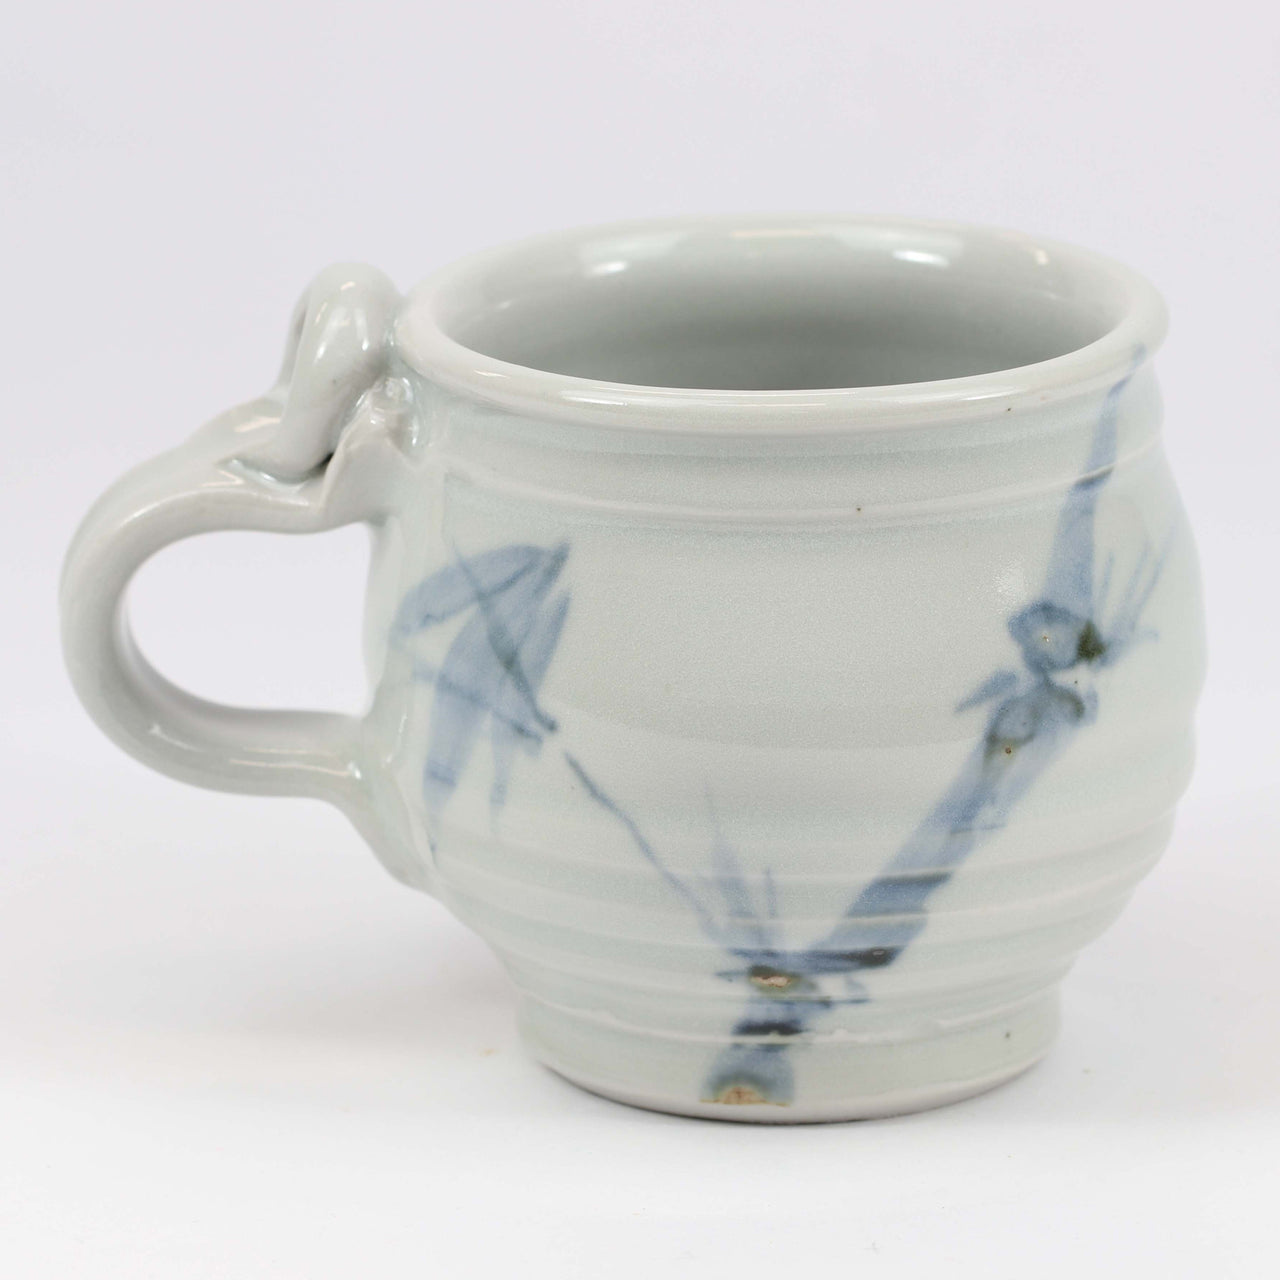 Small 11 oz. Mug: Clear Celadon Bamboo Pattern